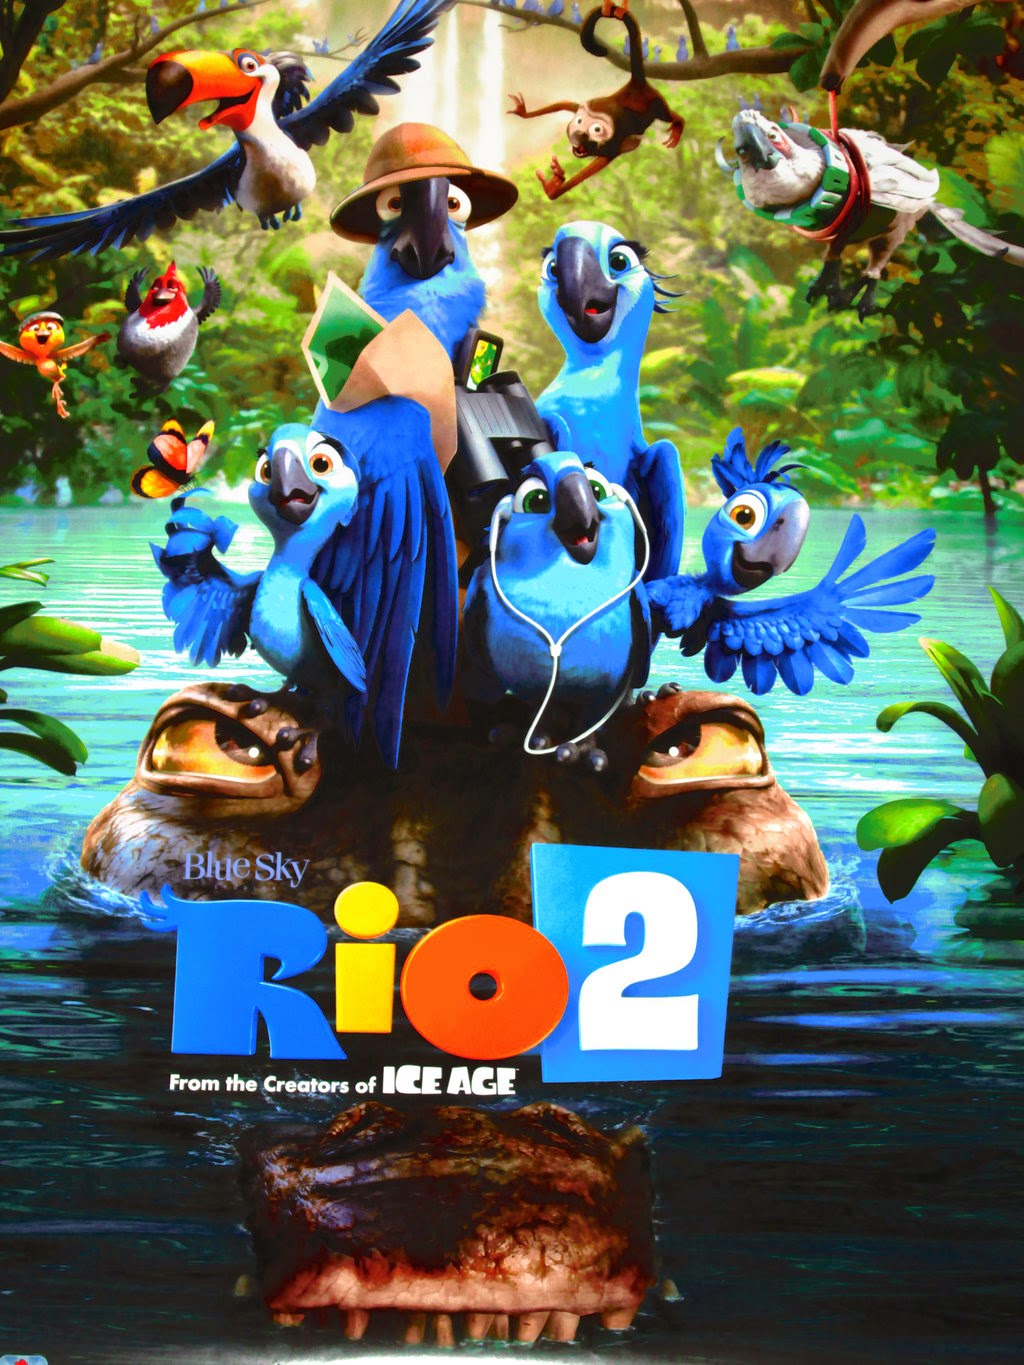 Fred said movies review of rio 2 vibrant avian entertainment review of rio 2 vibrant avian entertainment voltagebd Images